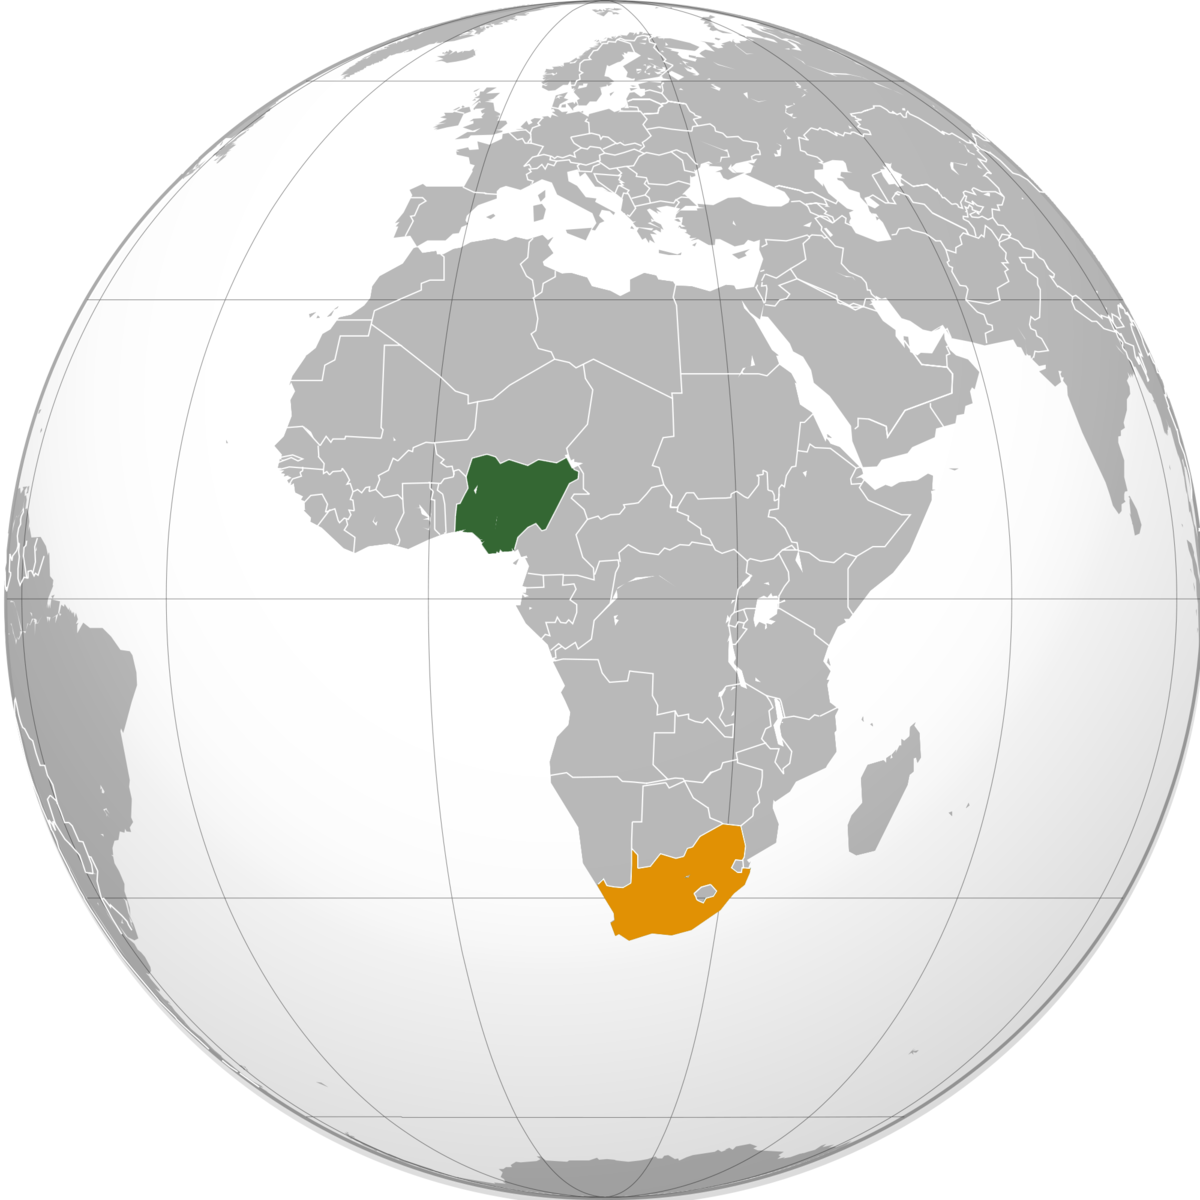 Map Of Africa Nigeria.Nigeria South Africa Relations Wikipedia